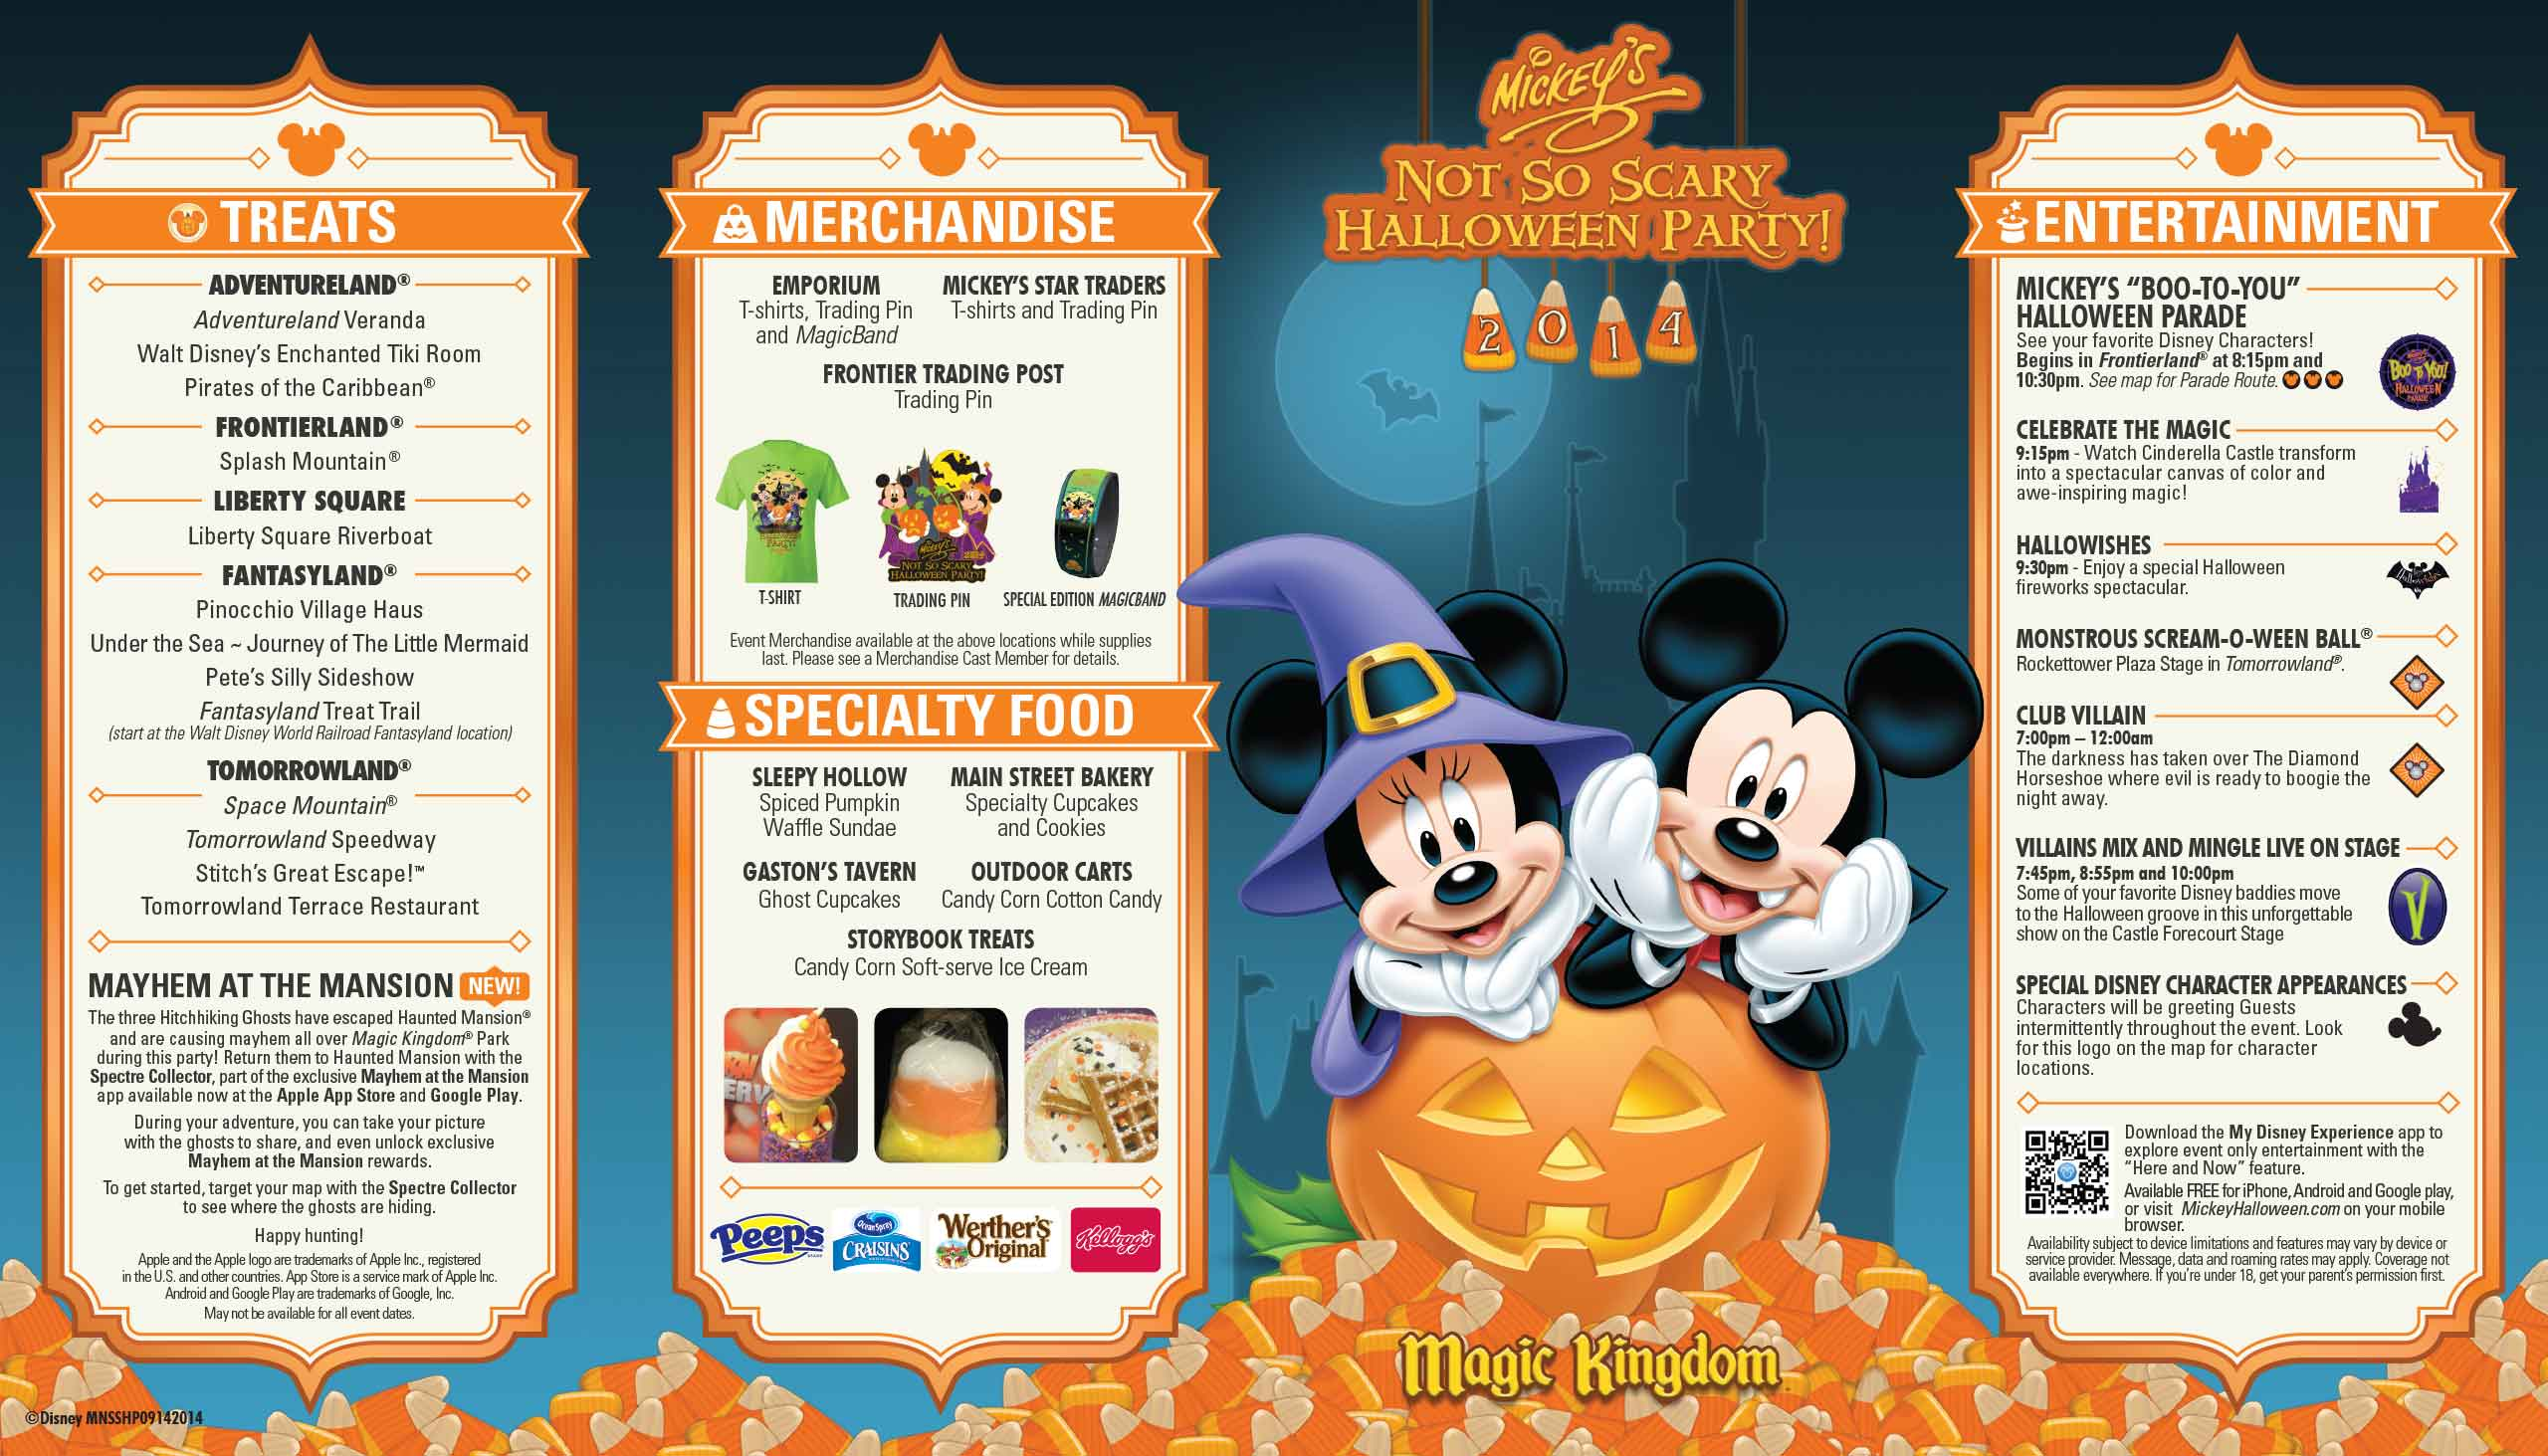 Mickey's Not-So-Scary Halloween Party guide map 2014 - Photo 1 of 2